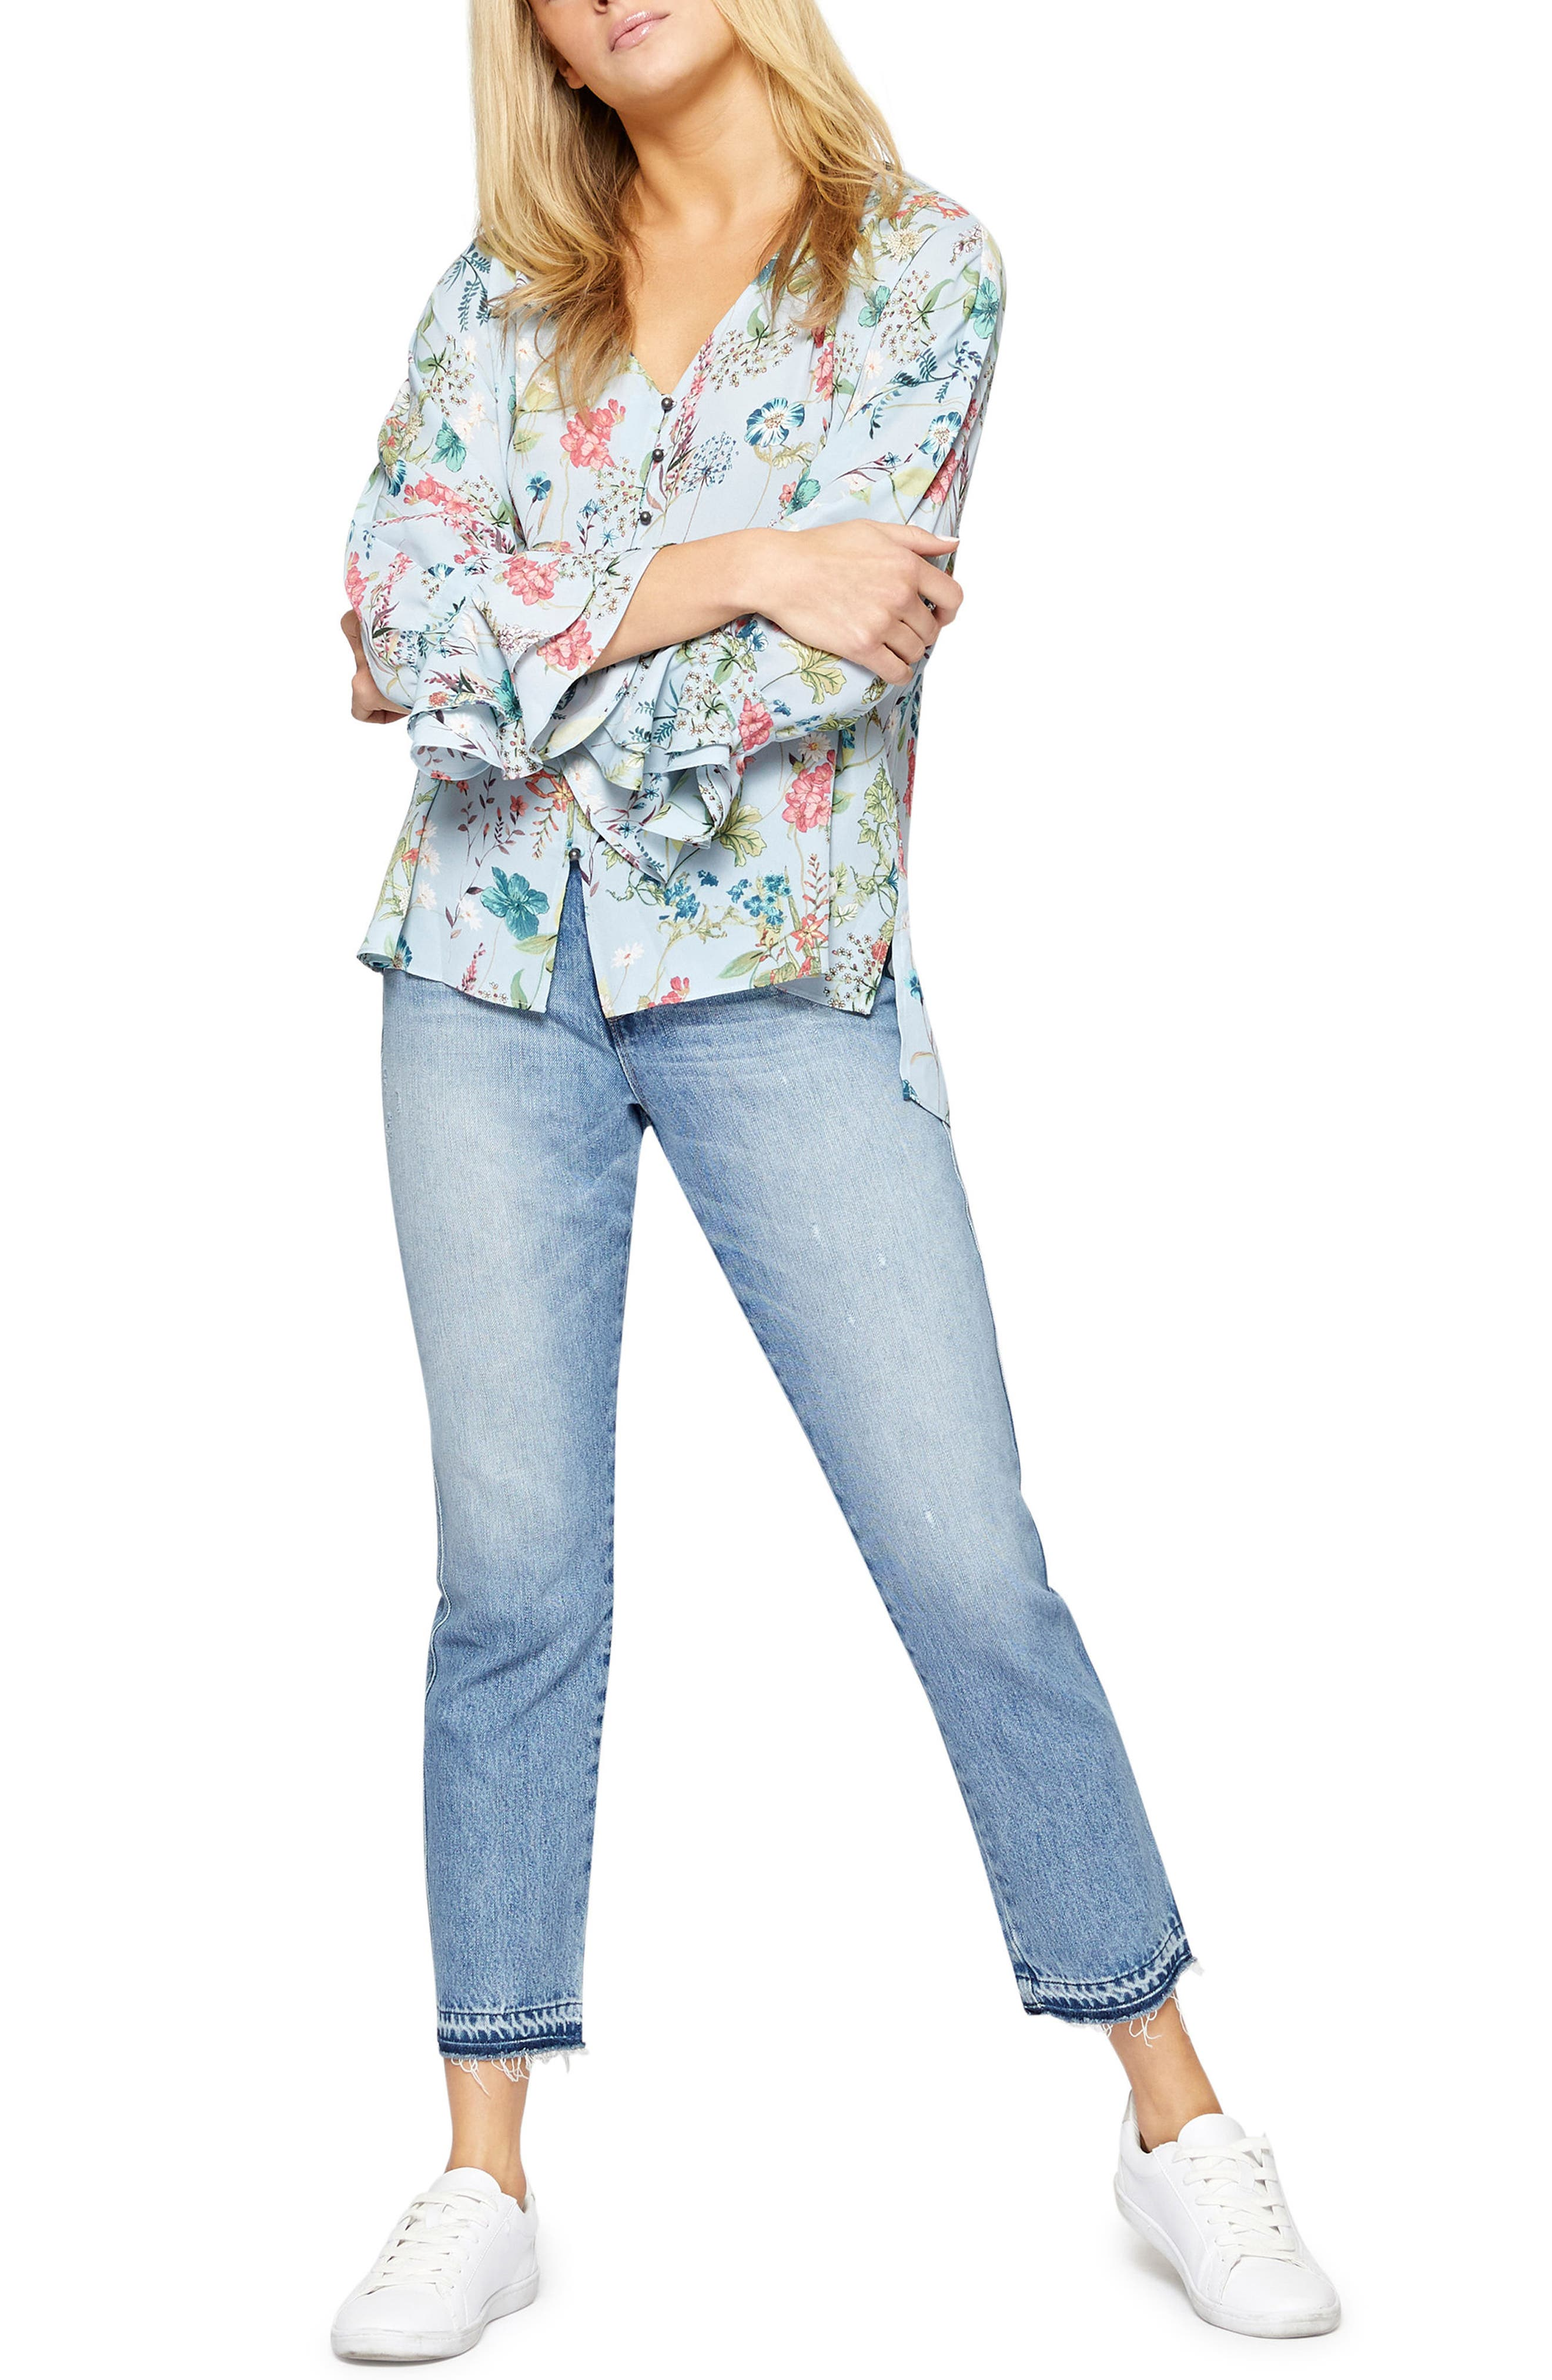 Posey Floral Blouse,                             Alternate thumbnail 4, color,                             Bluebell